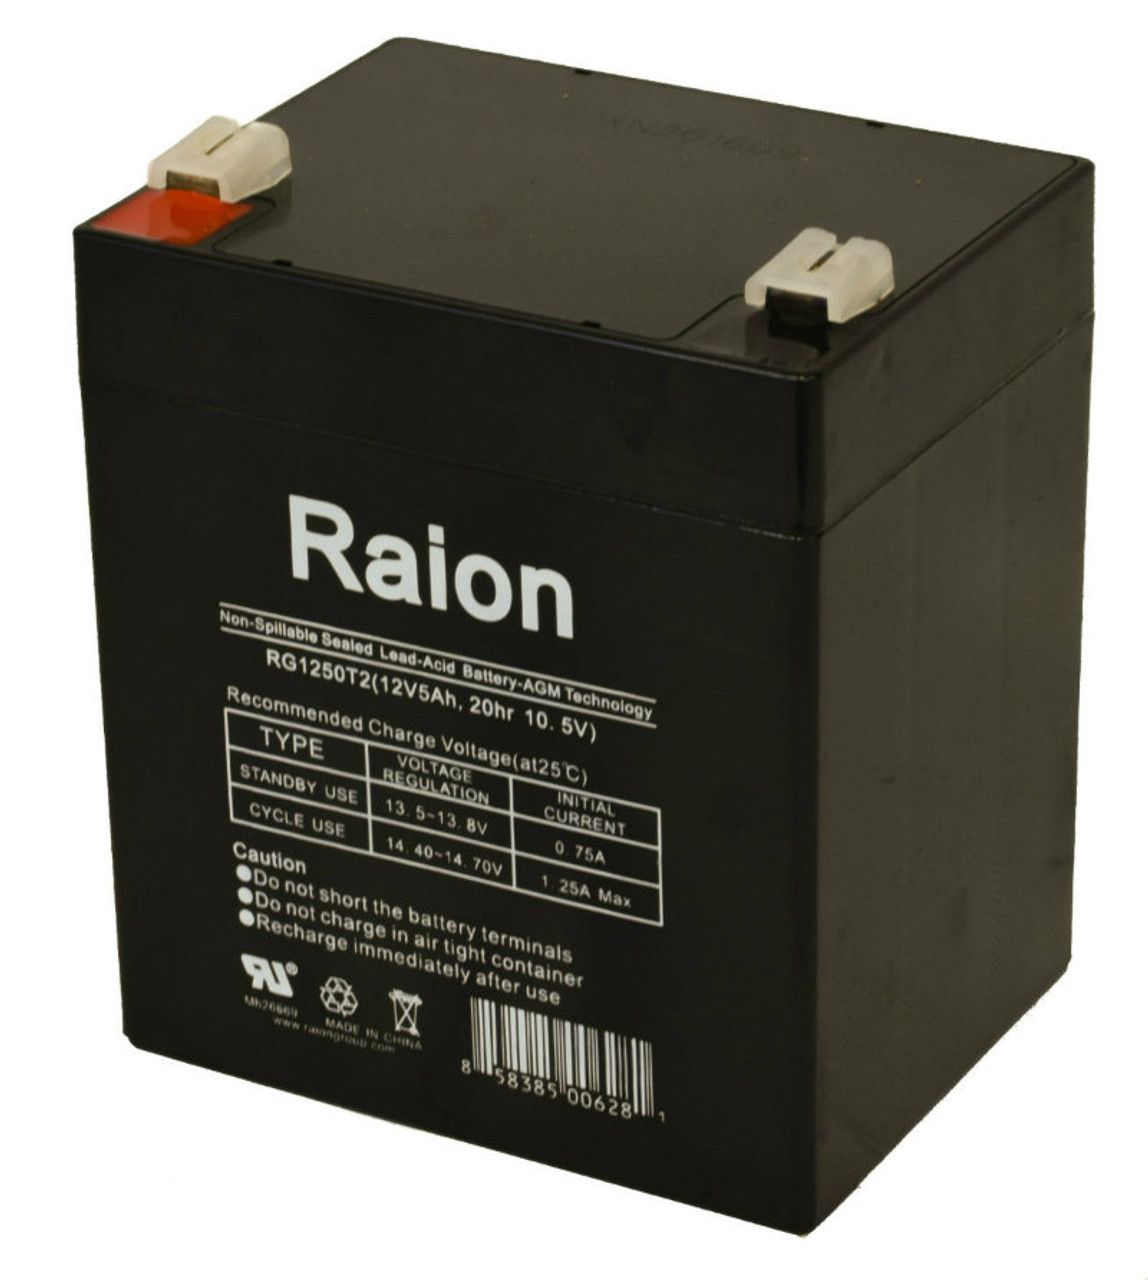 Raion Power RG1250T1 Replacement Battery for Power Source WP5-12 (91-300)